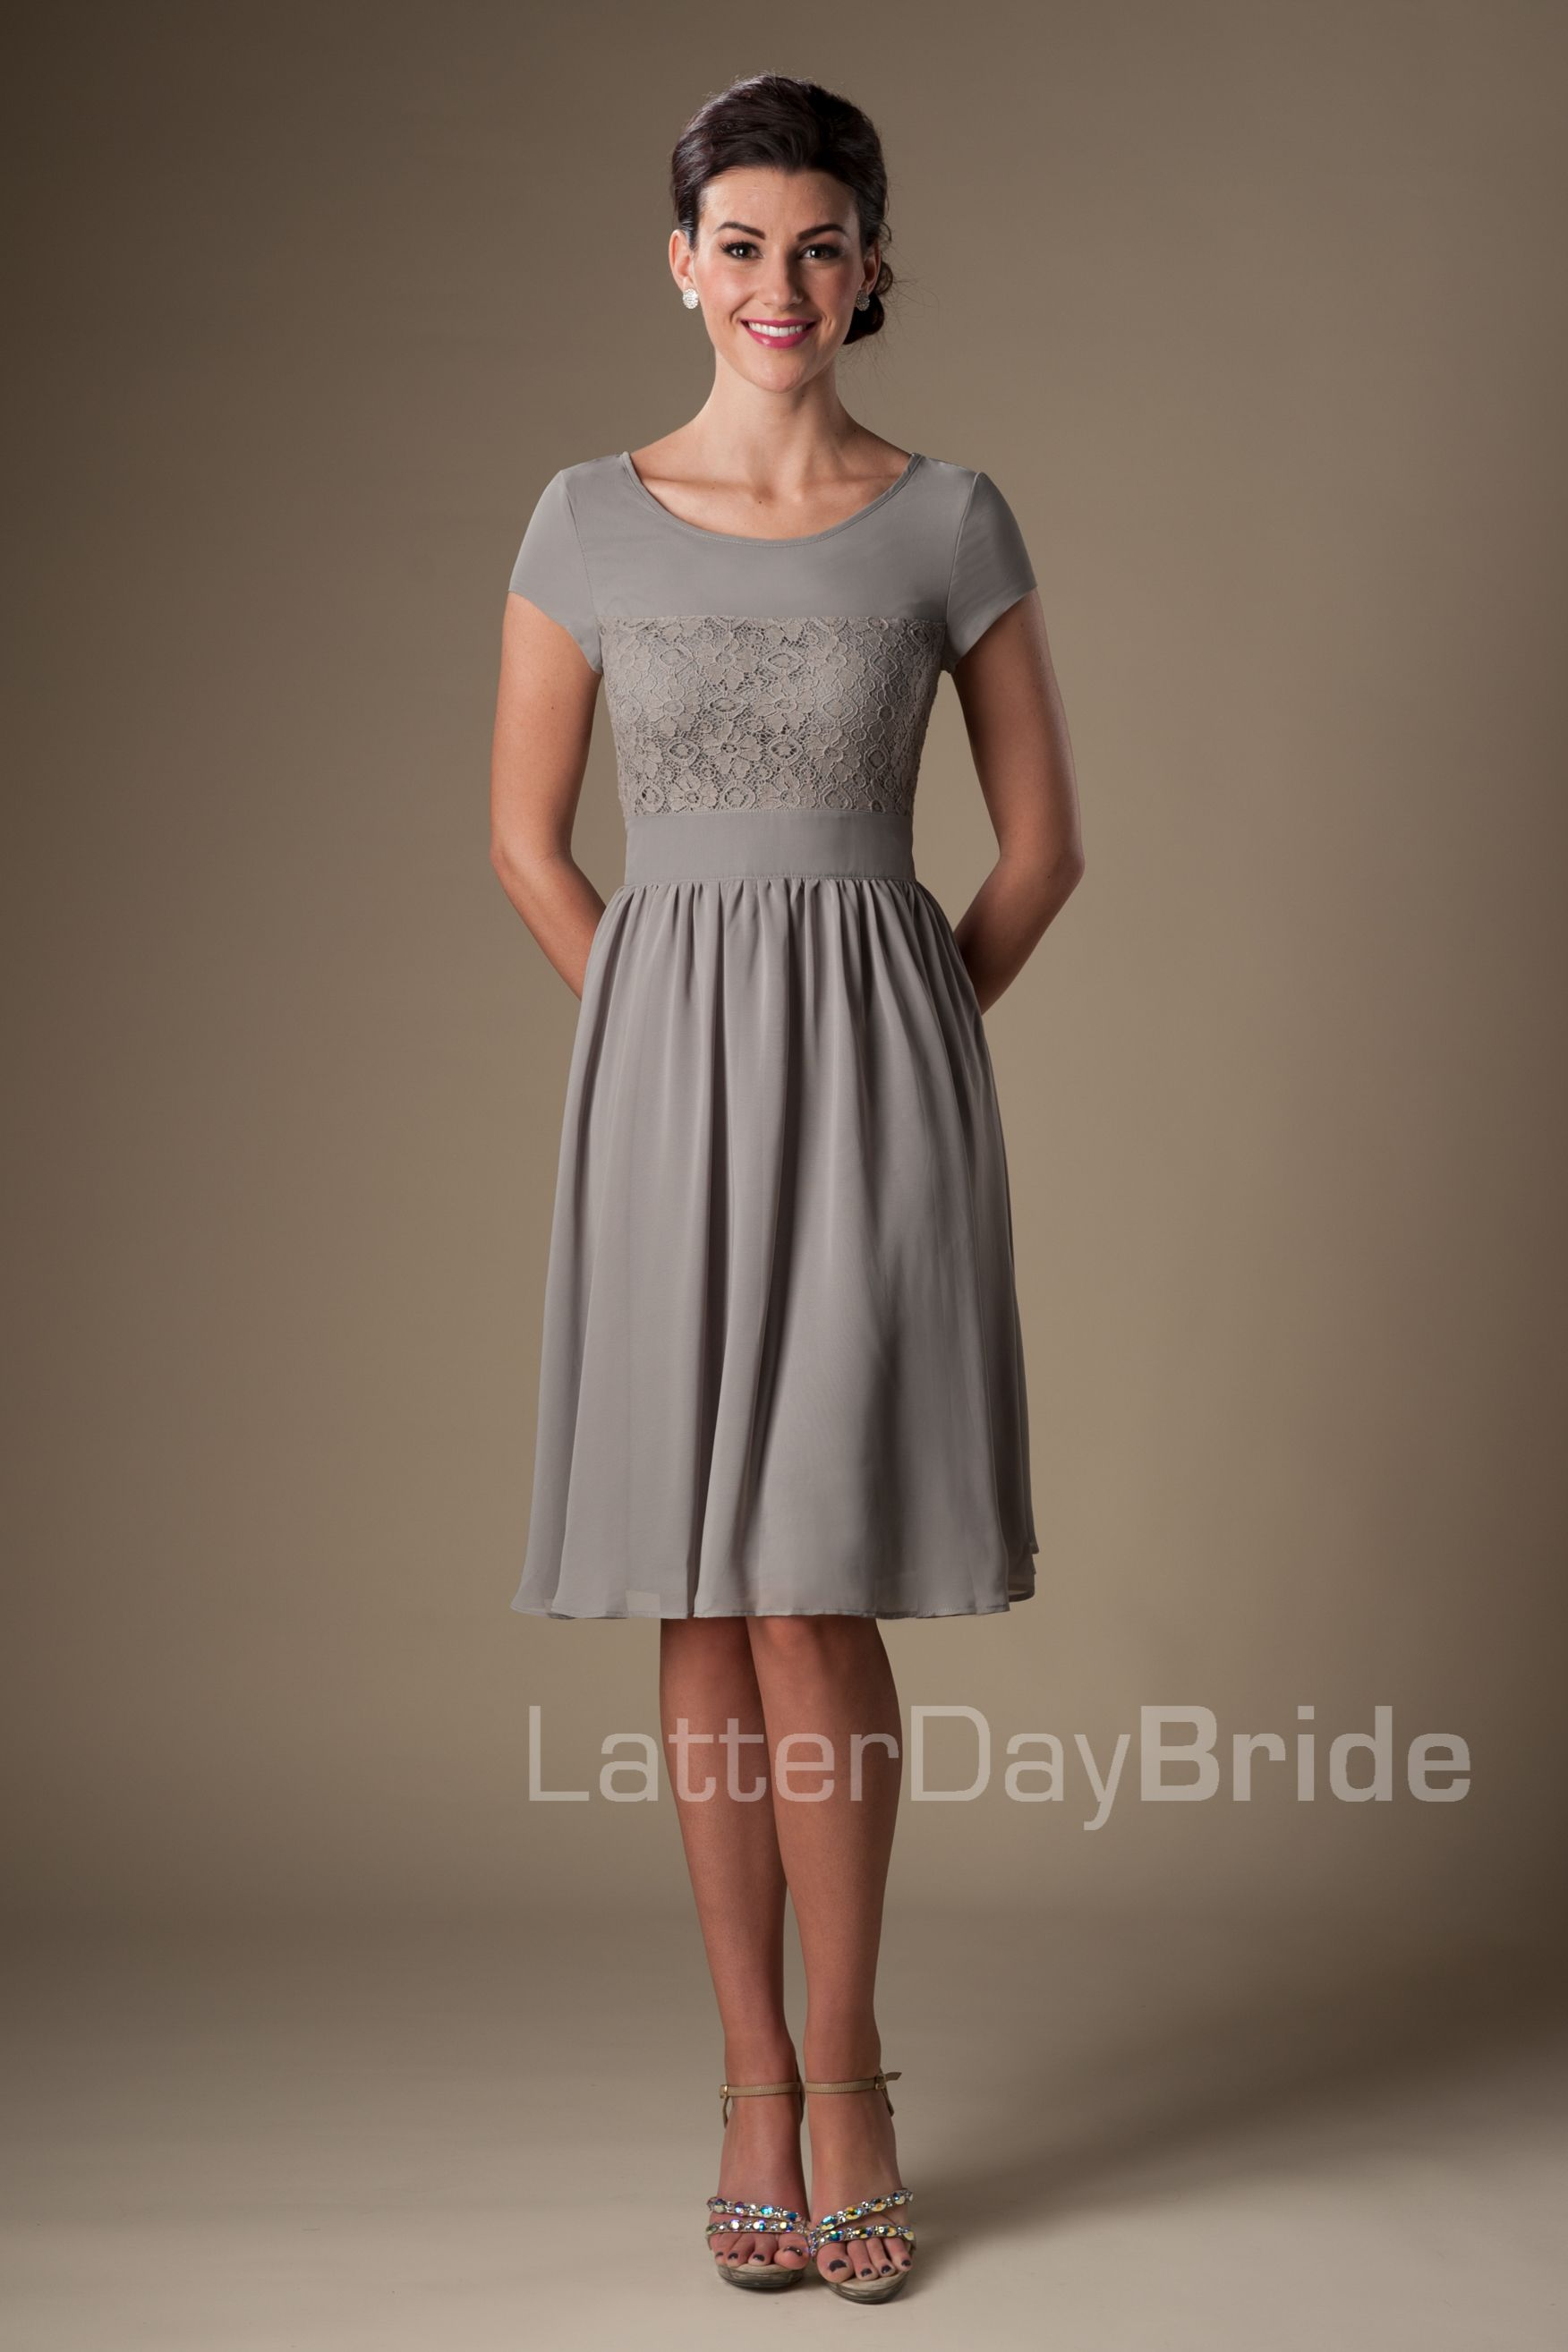 Modest bridesmaid dress from latter day bride in a lovely gray modest bridesmaid dress from latter day bride in a lovely gray that can be worn to ombrellifo Images